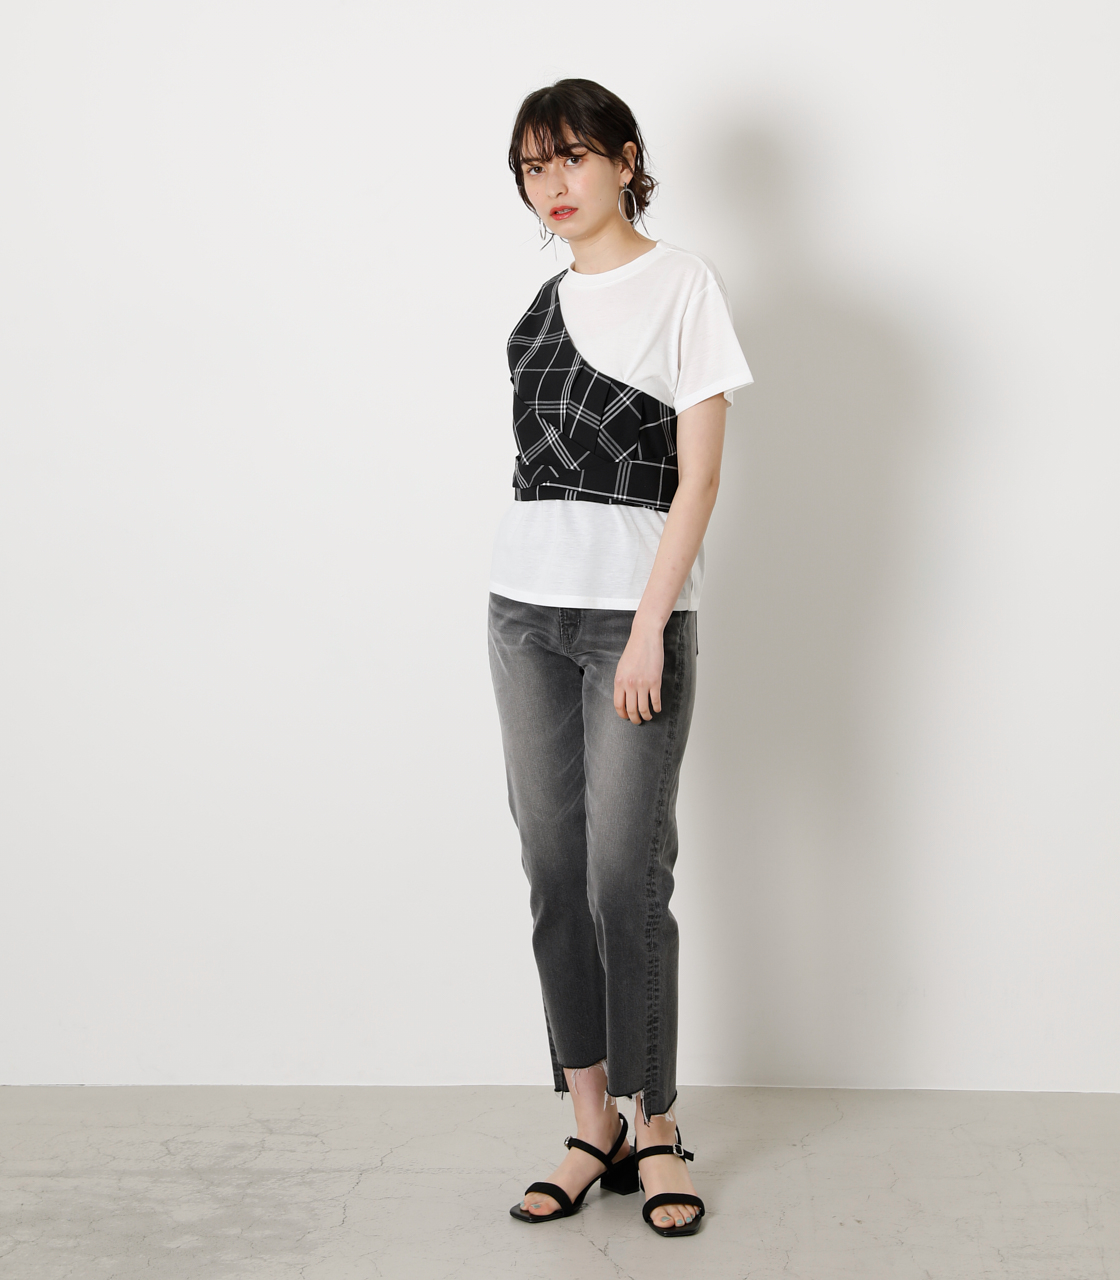 ONESHOULDER CHECK BUSTIER TOPS/ワンショルダーチェックビジタートップス 詳細画像 柄BLK 3